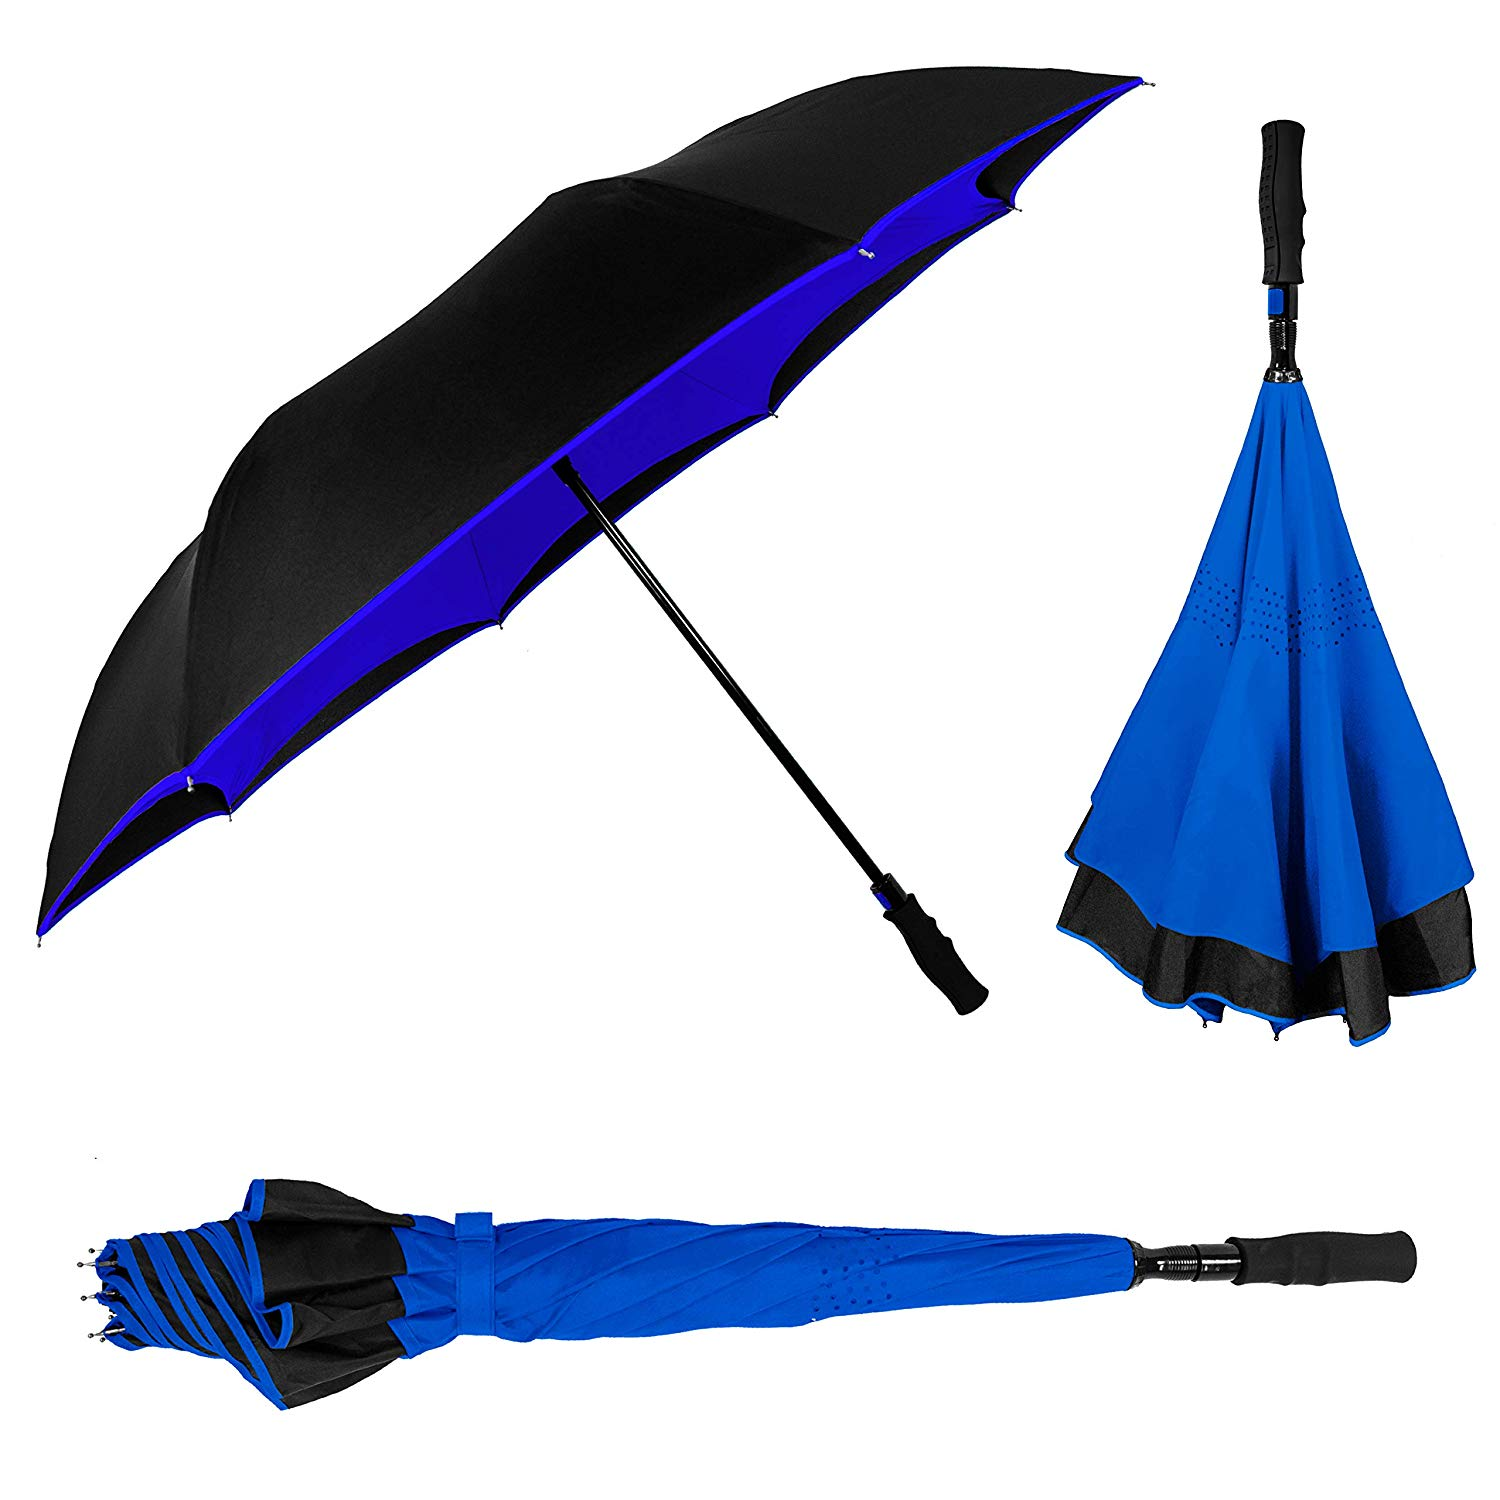 Most popular reverse umbrella rubber coated long handle upside down umbrella with shoulder bag